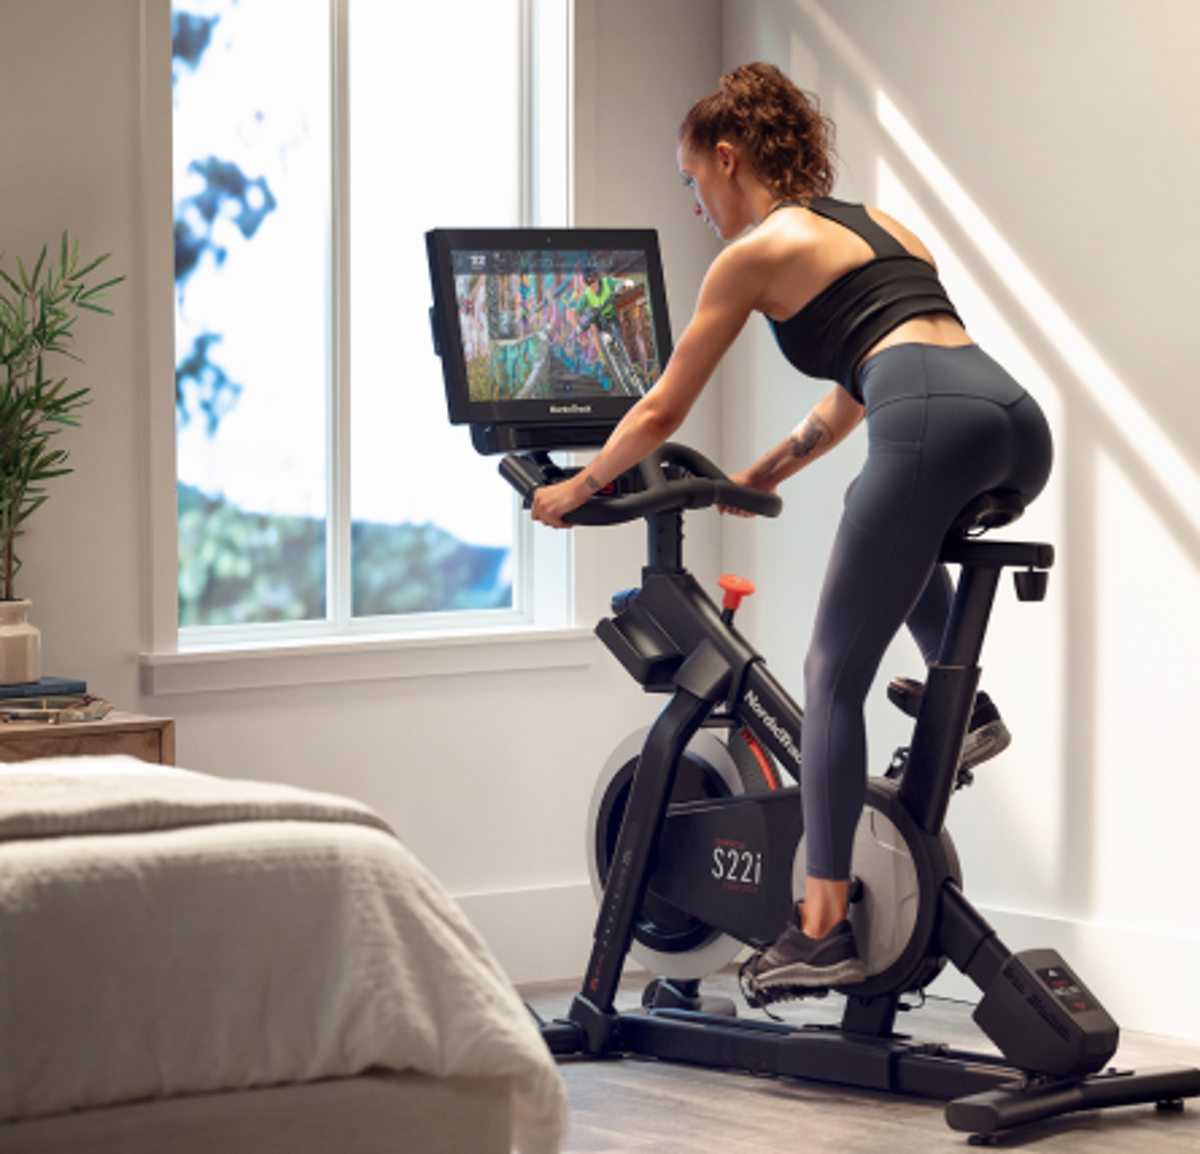 Woman does an iFIT workout class on her bike